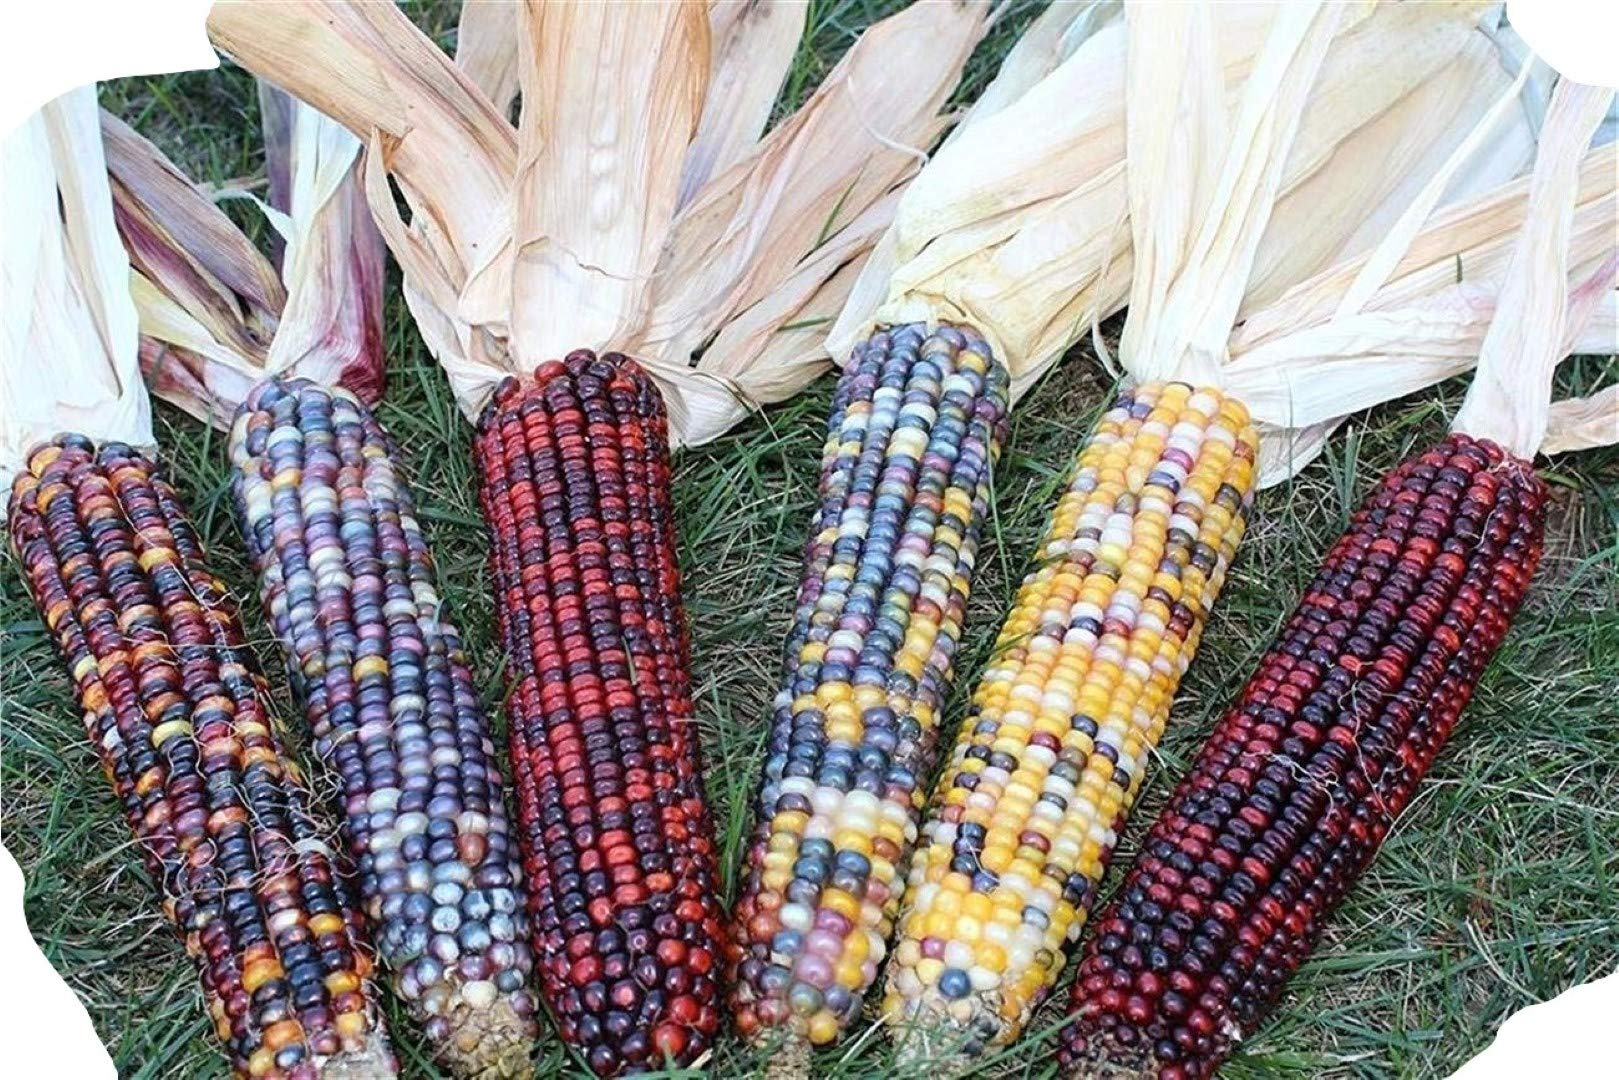 Decorative Indian Corn - 5 to 6 Ears with Husk - Each Ear 6 to 10 inches Long - Ornamental by Noteboom Farms LLC (Image #4)